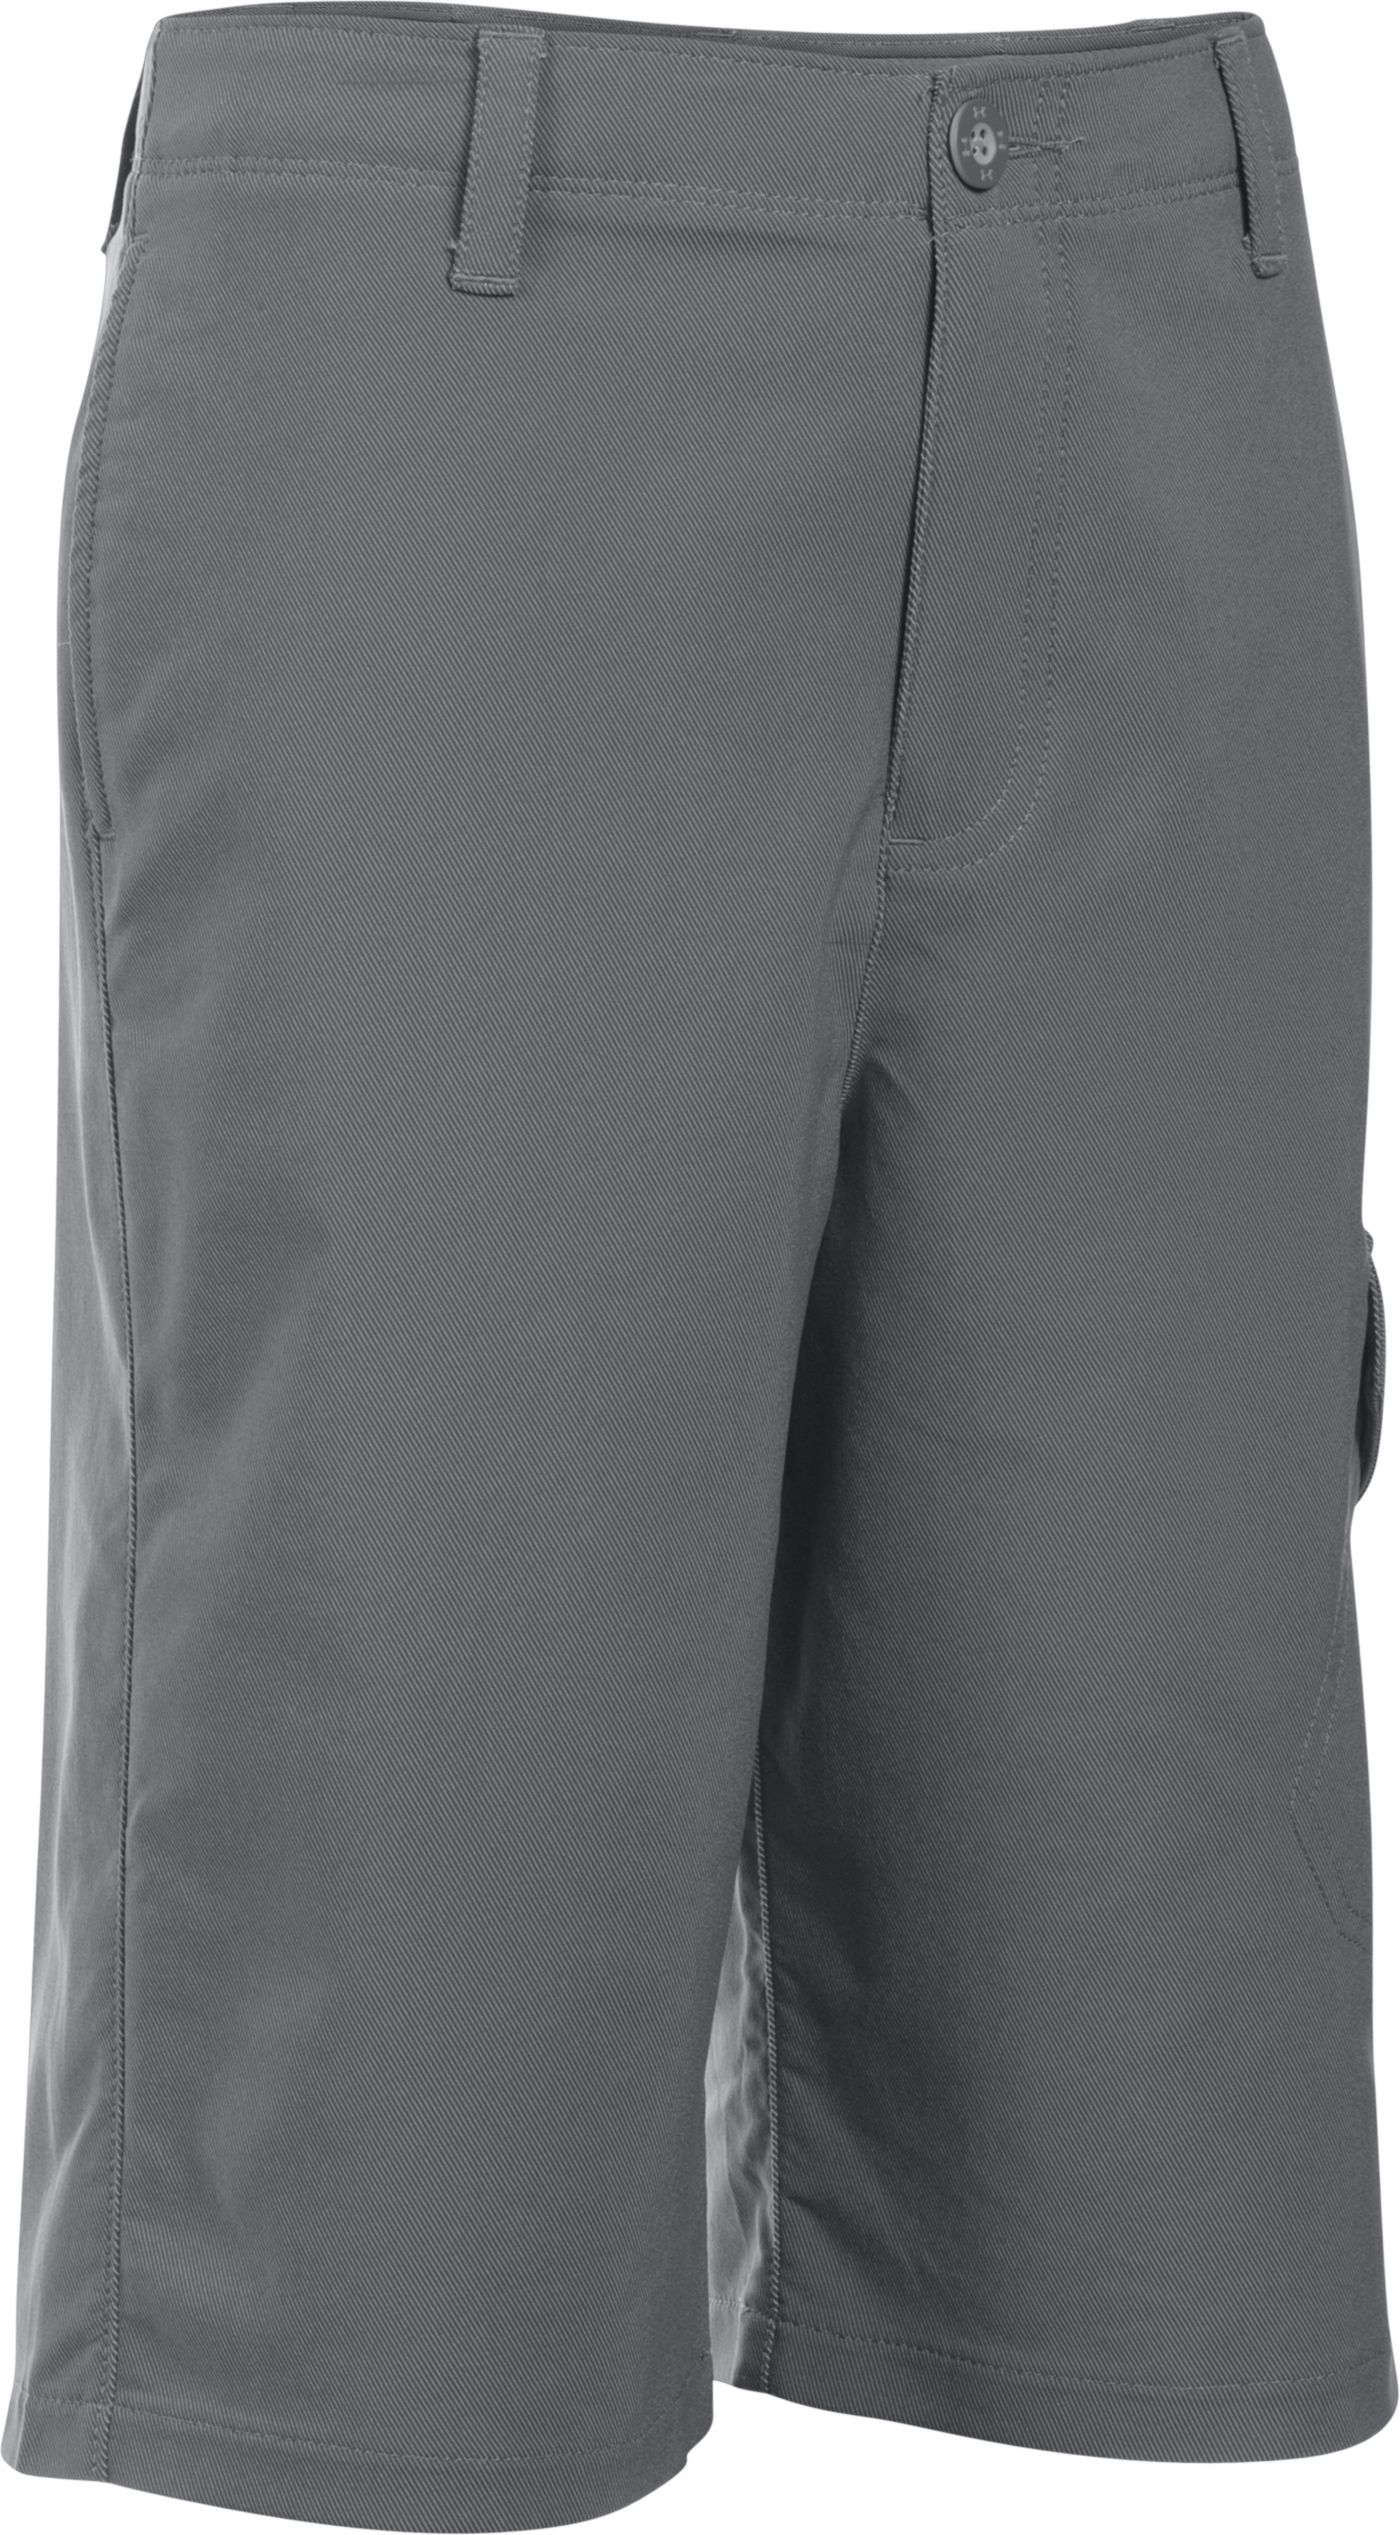 Under Armour Boys' Match Play Cargo Shorts